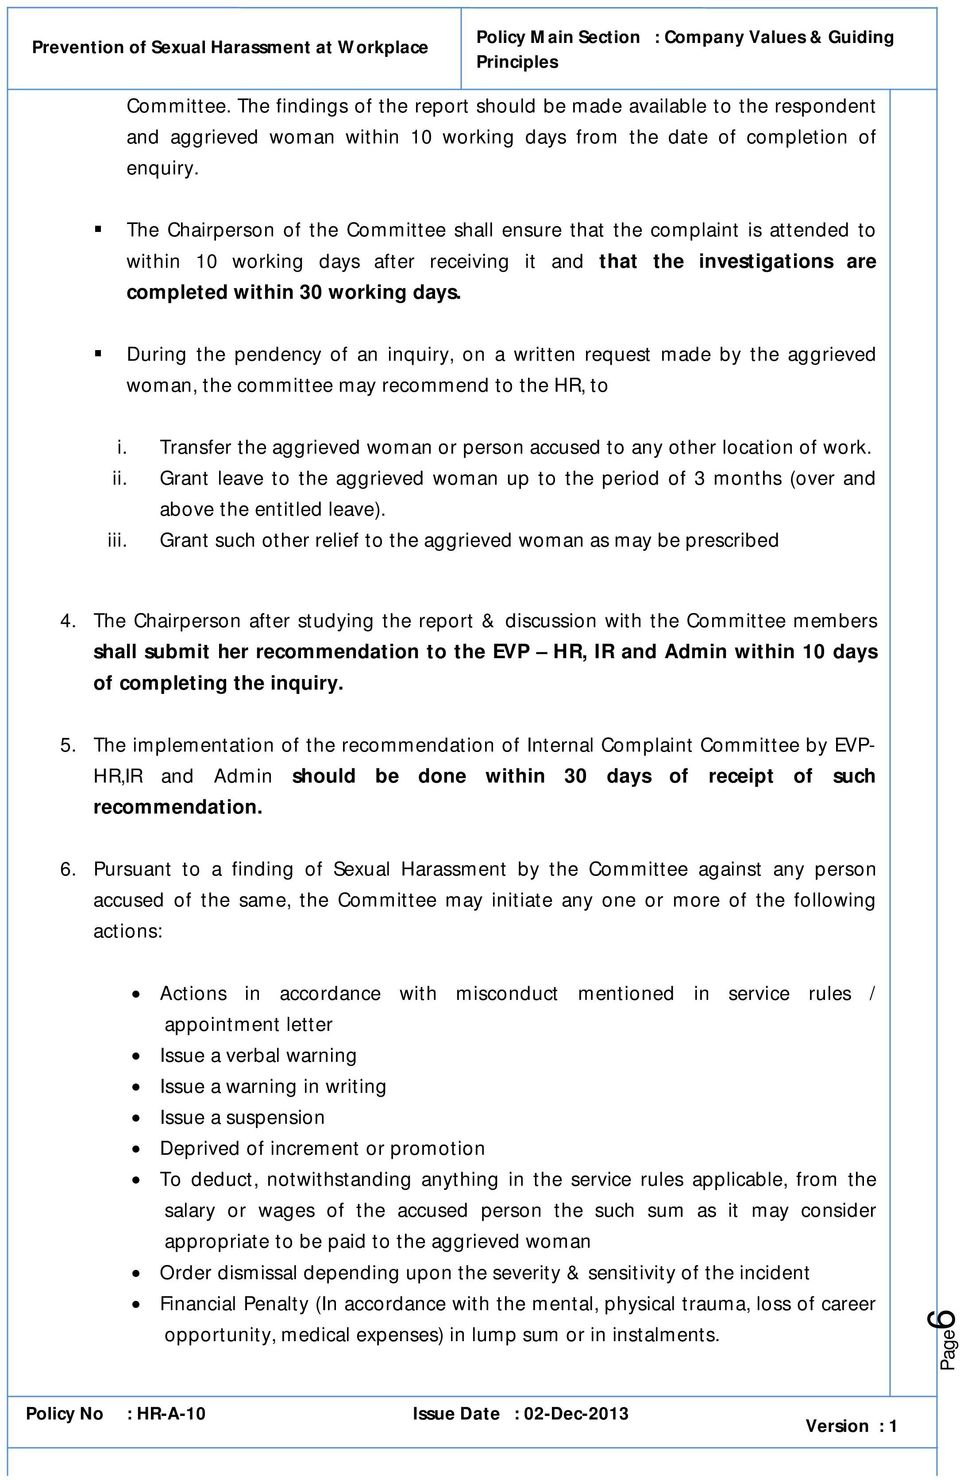 policy on prevention of sexual harassment at the workplace pdf during the pendency of an inquiry on a written request made by the aggrieved w